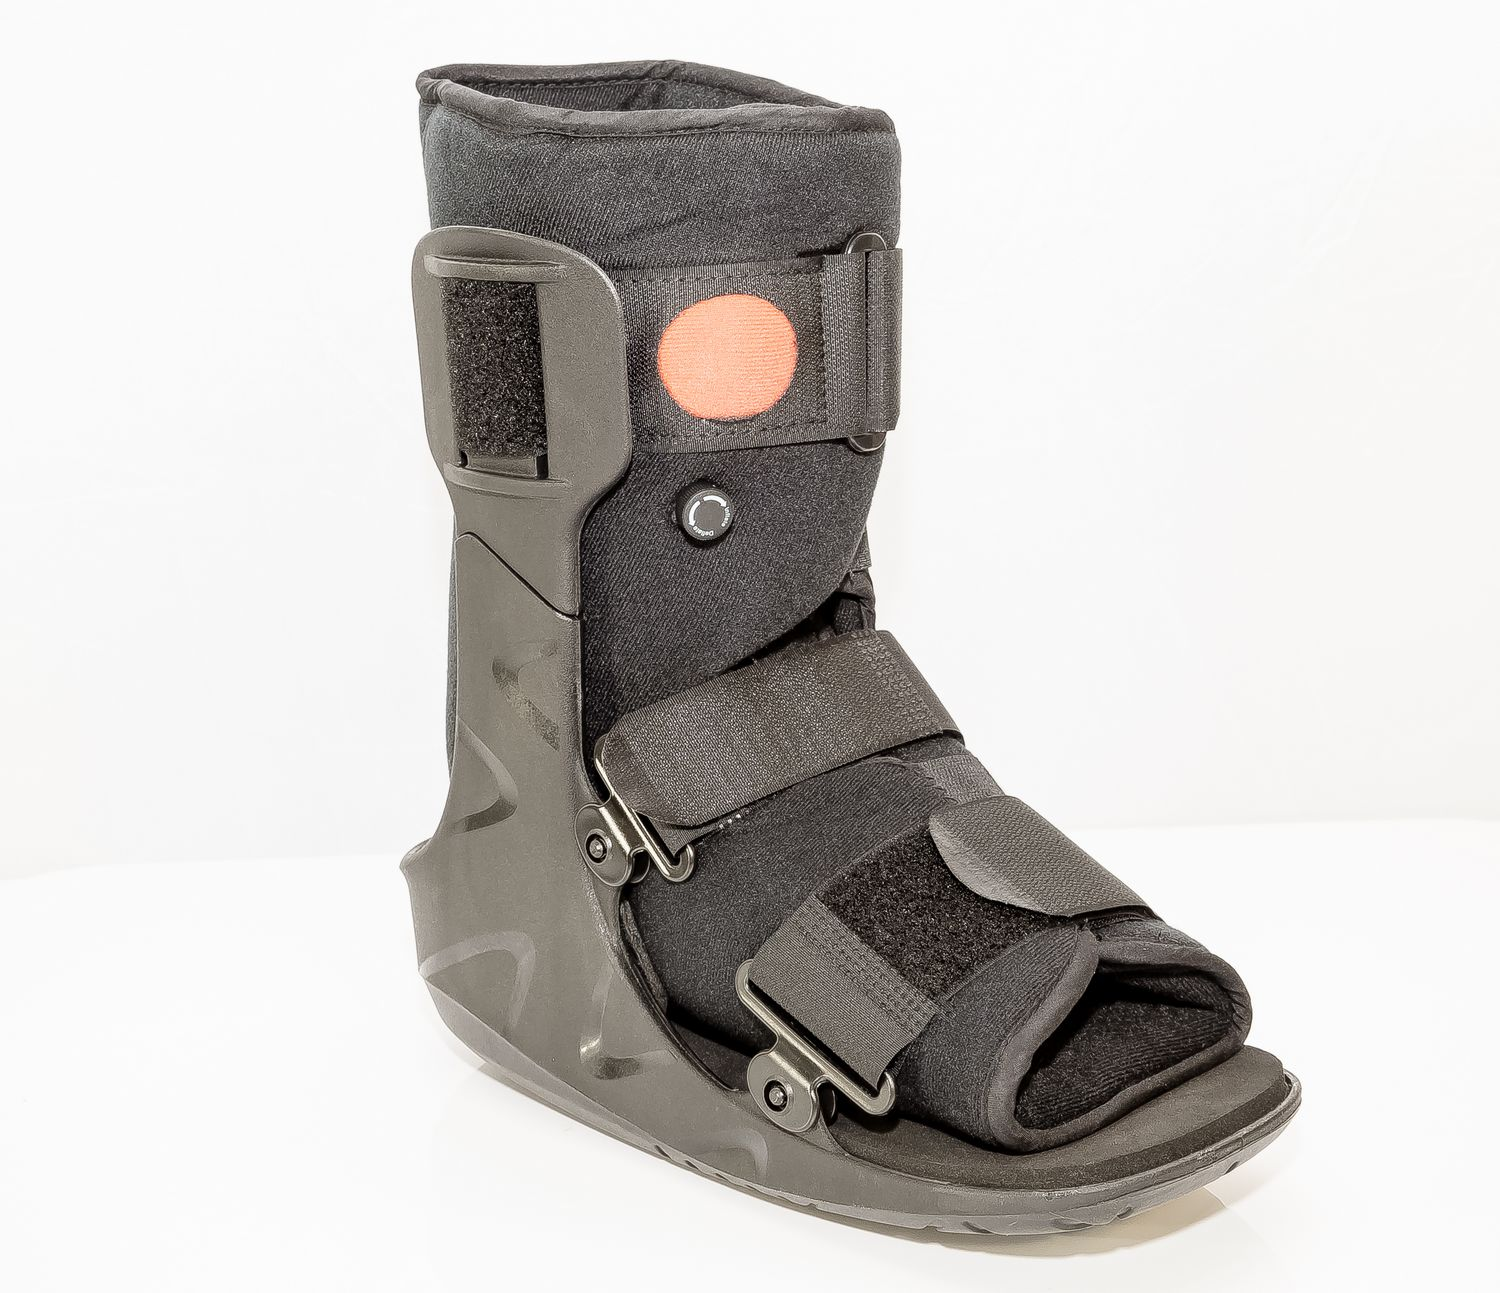 da4ae77b64 Toe Fracture Boot - Low Top Air Cast for Foot - OrthoLife